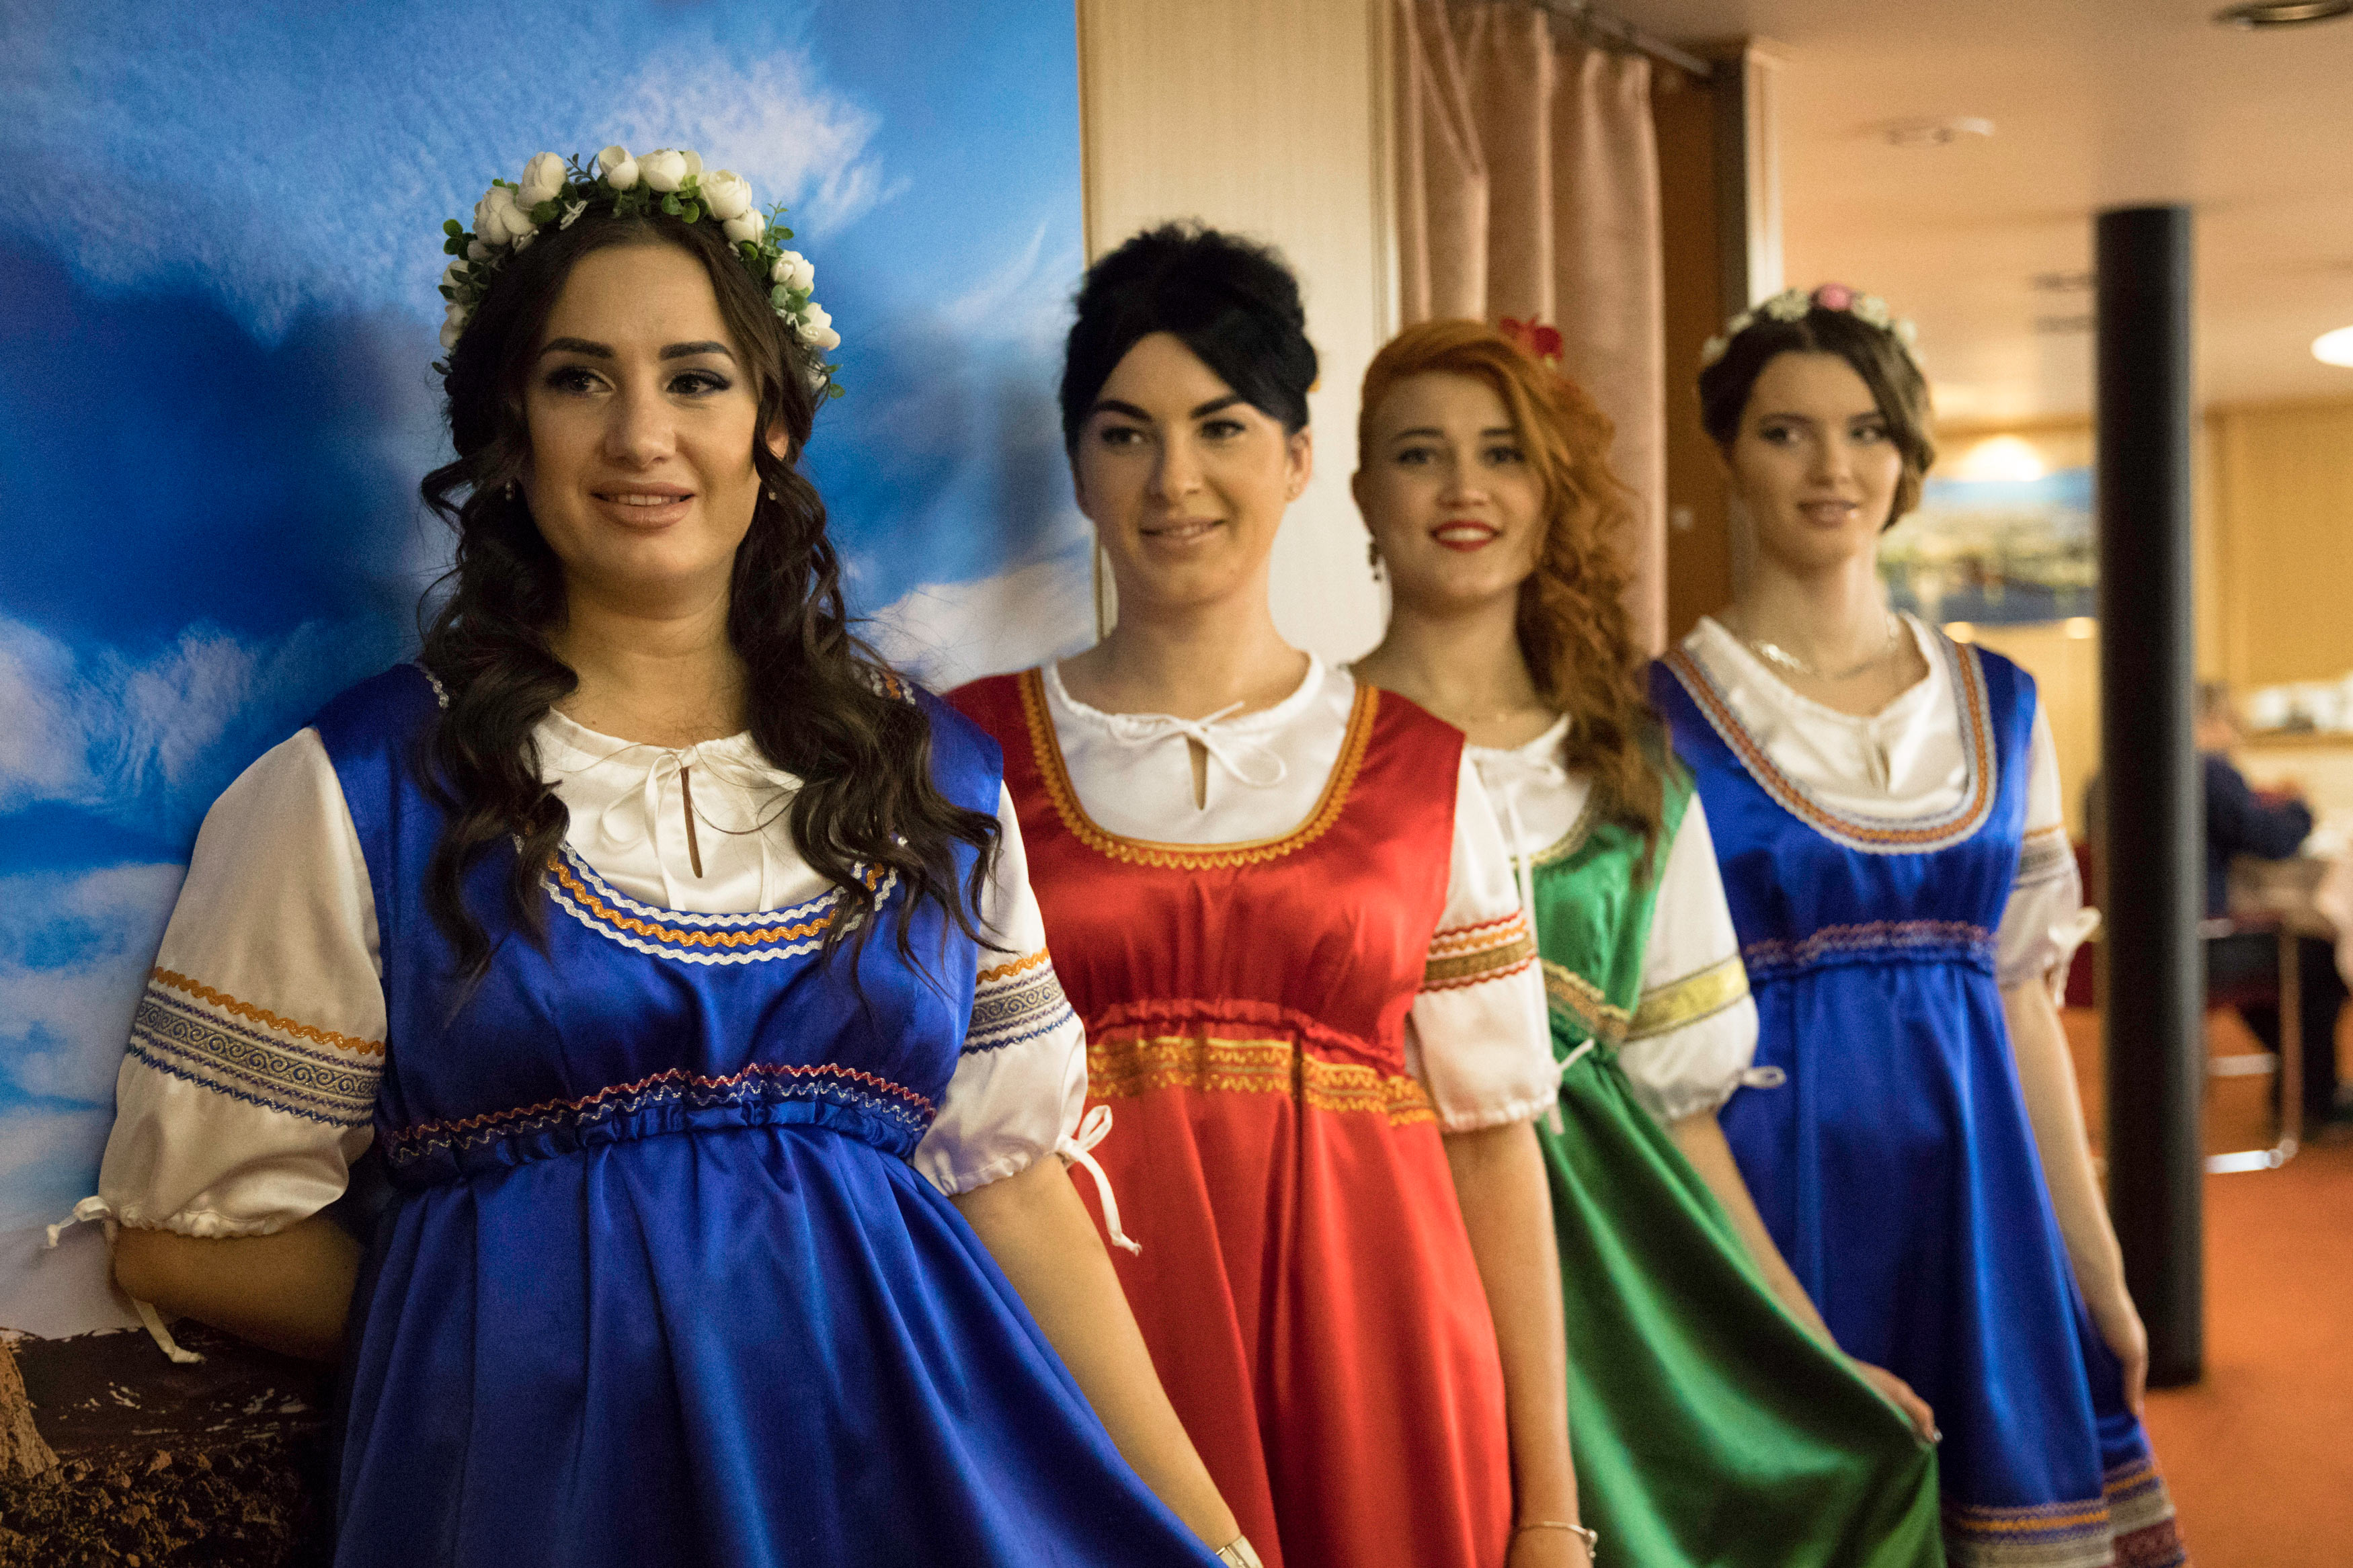 Hospitality staff dress up for the Russian Dinner. Photo: Dani Plumb